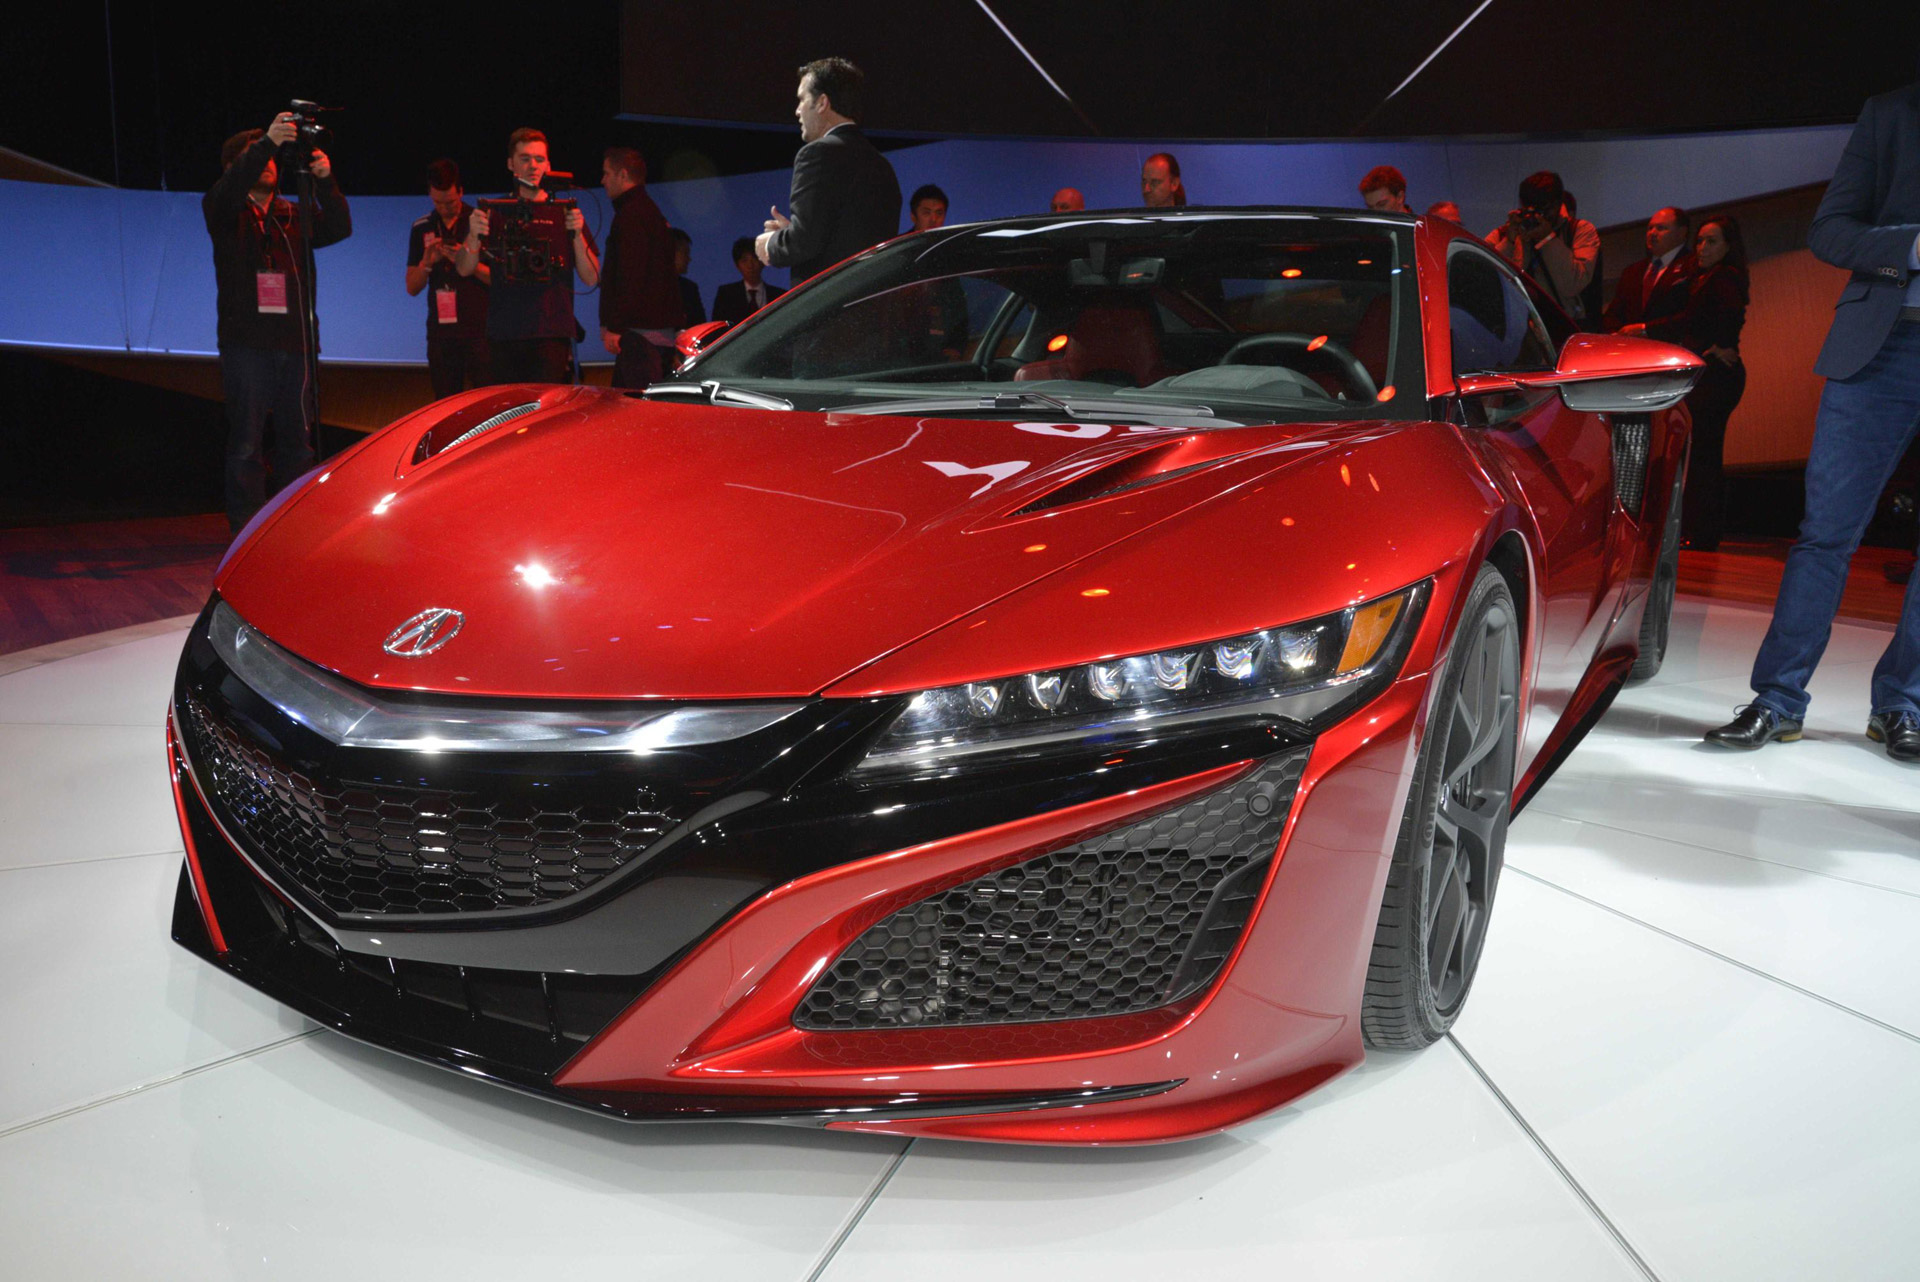 acura nsx supercar unveiled in detroit: this time it's a hybrid!